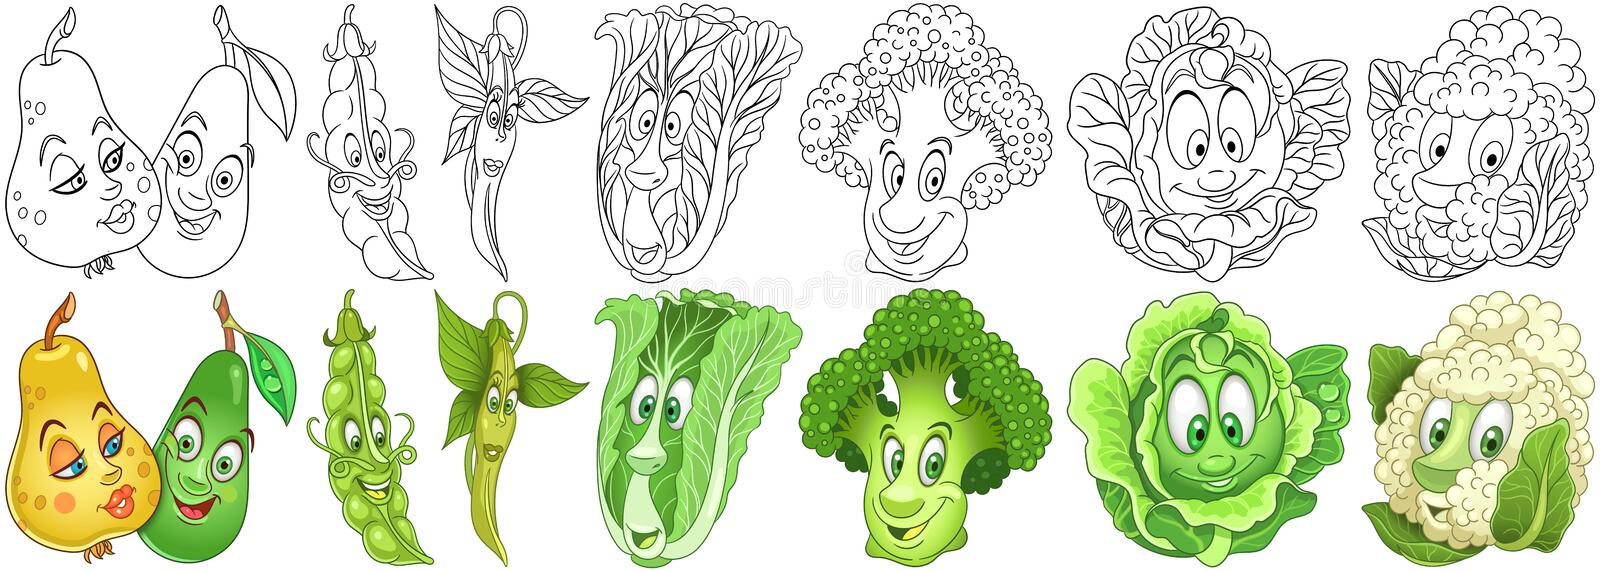 Cartoon Vegetables set royalty free stock image